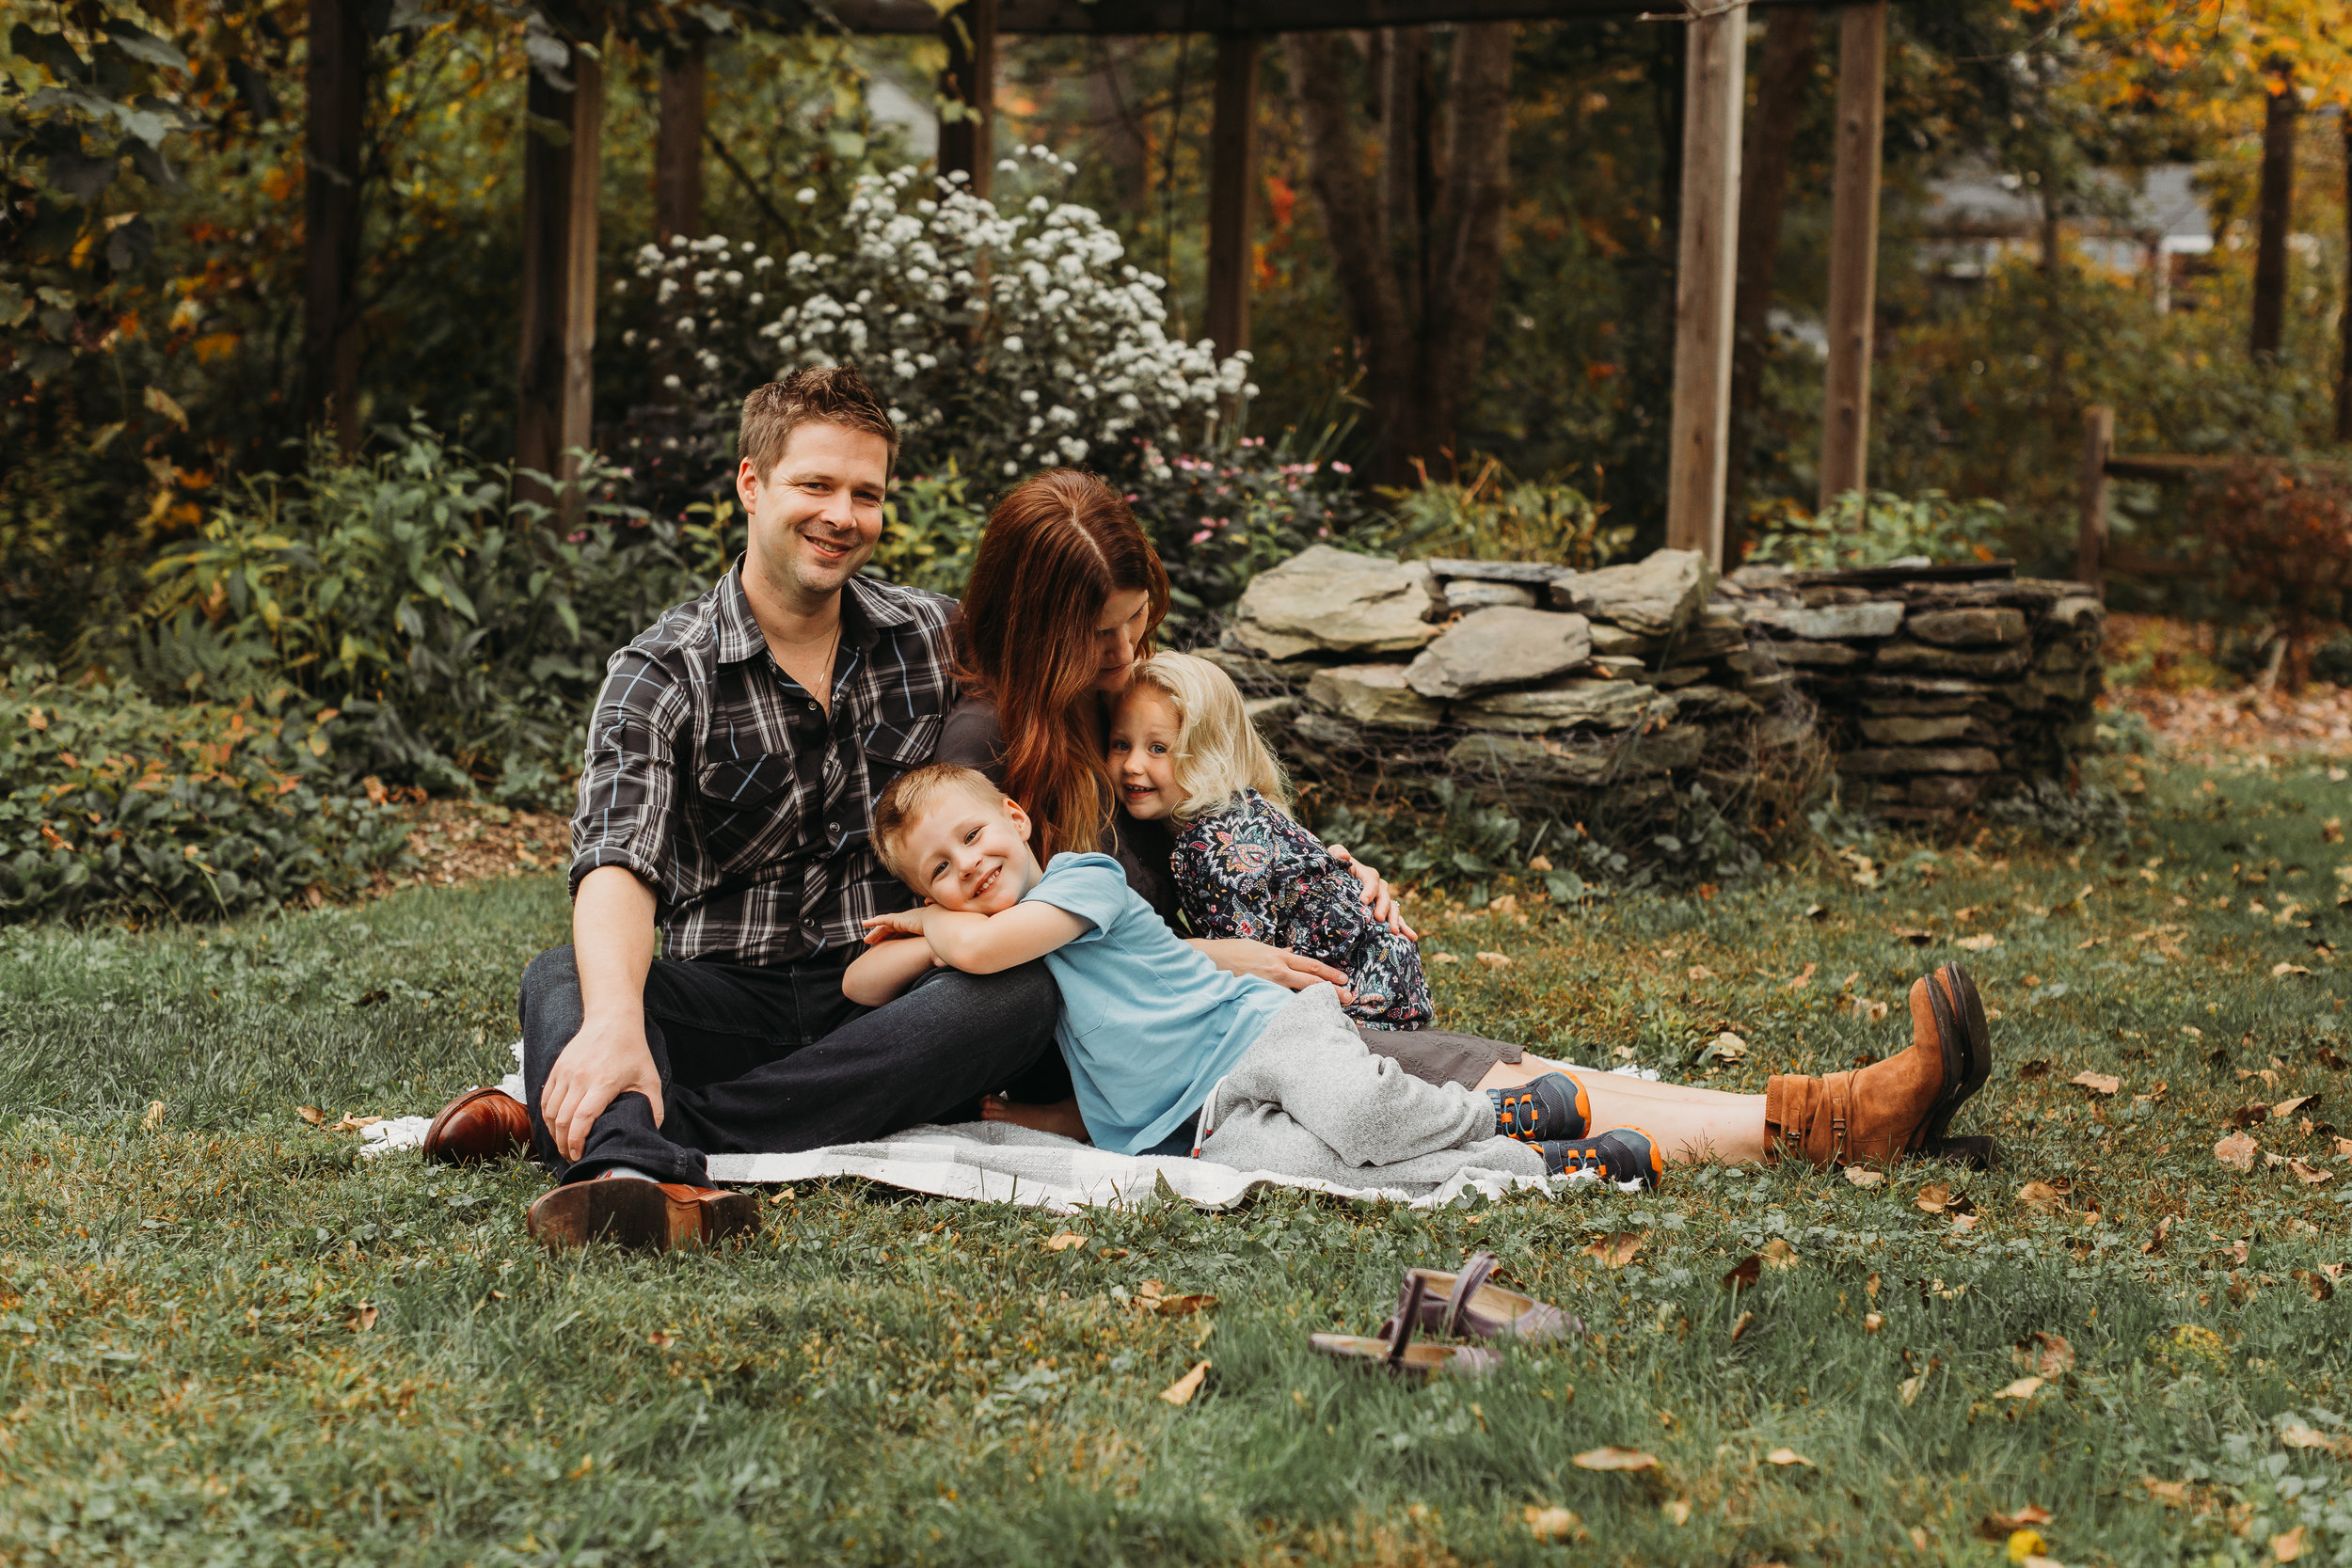 Family portraits in Acton, Massachusetts. How to get kids excited about family portraits. Boston lifestyle photography. Natural light and outdoor photography.